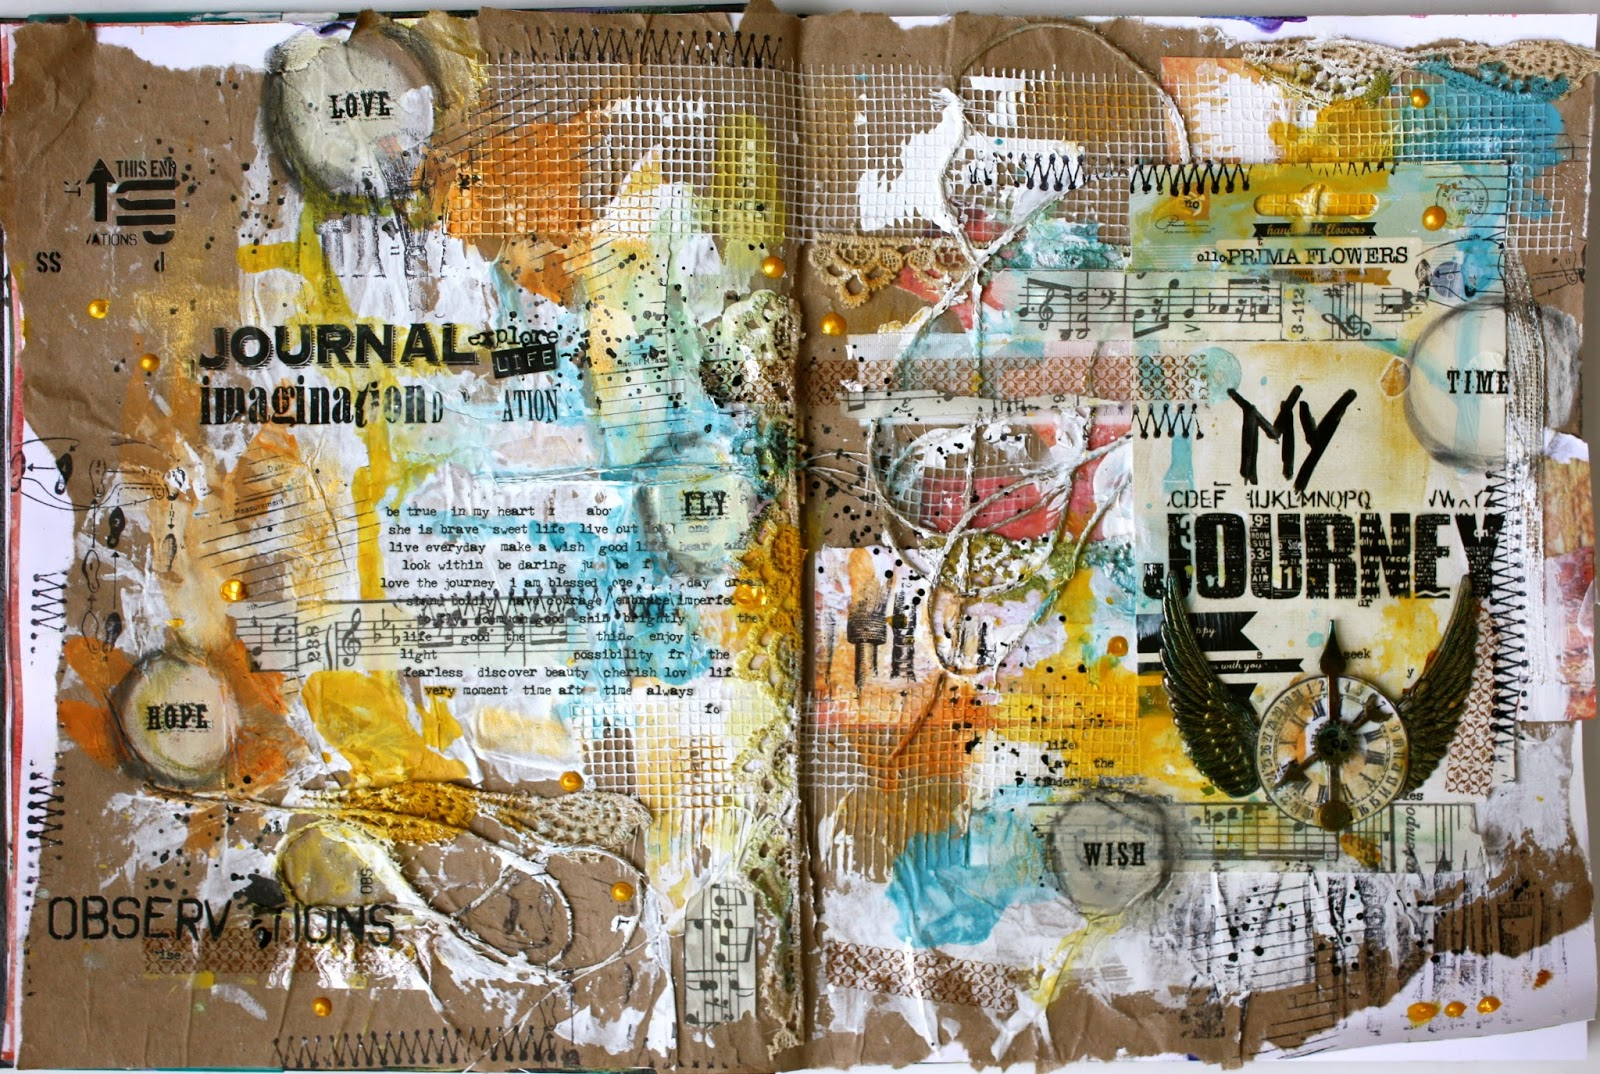 "Ophelia S Adornments Blog May 2012: Limor Webber Designs DT Blog: ""My Journey"" Art Journal"